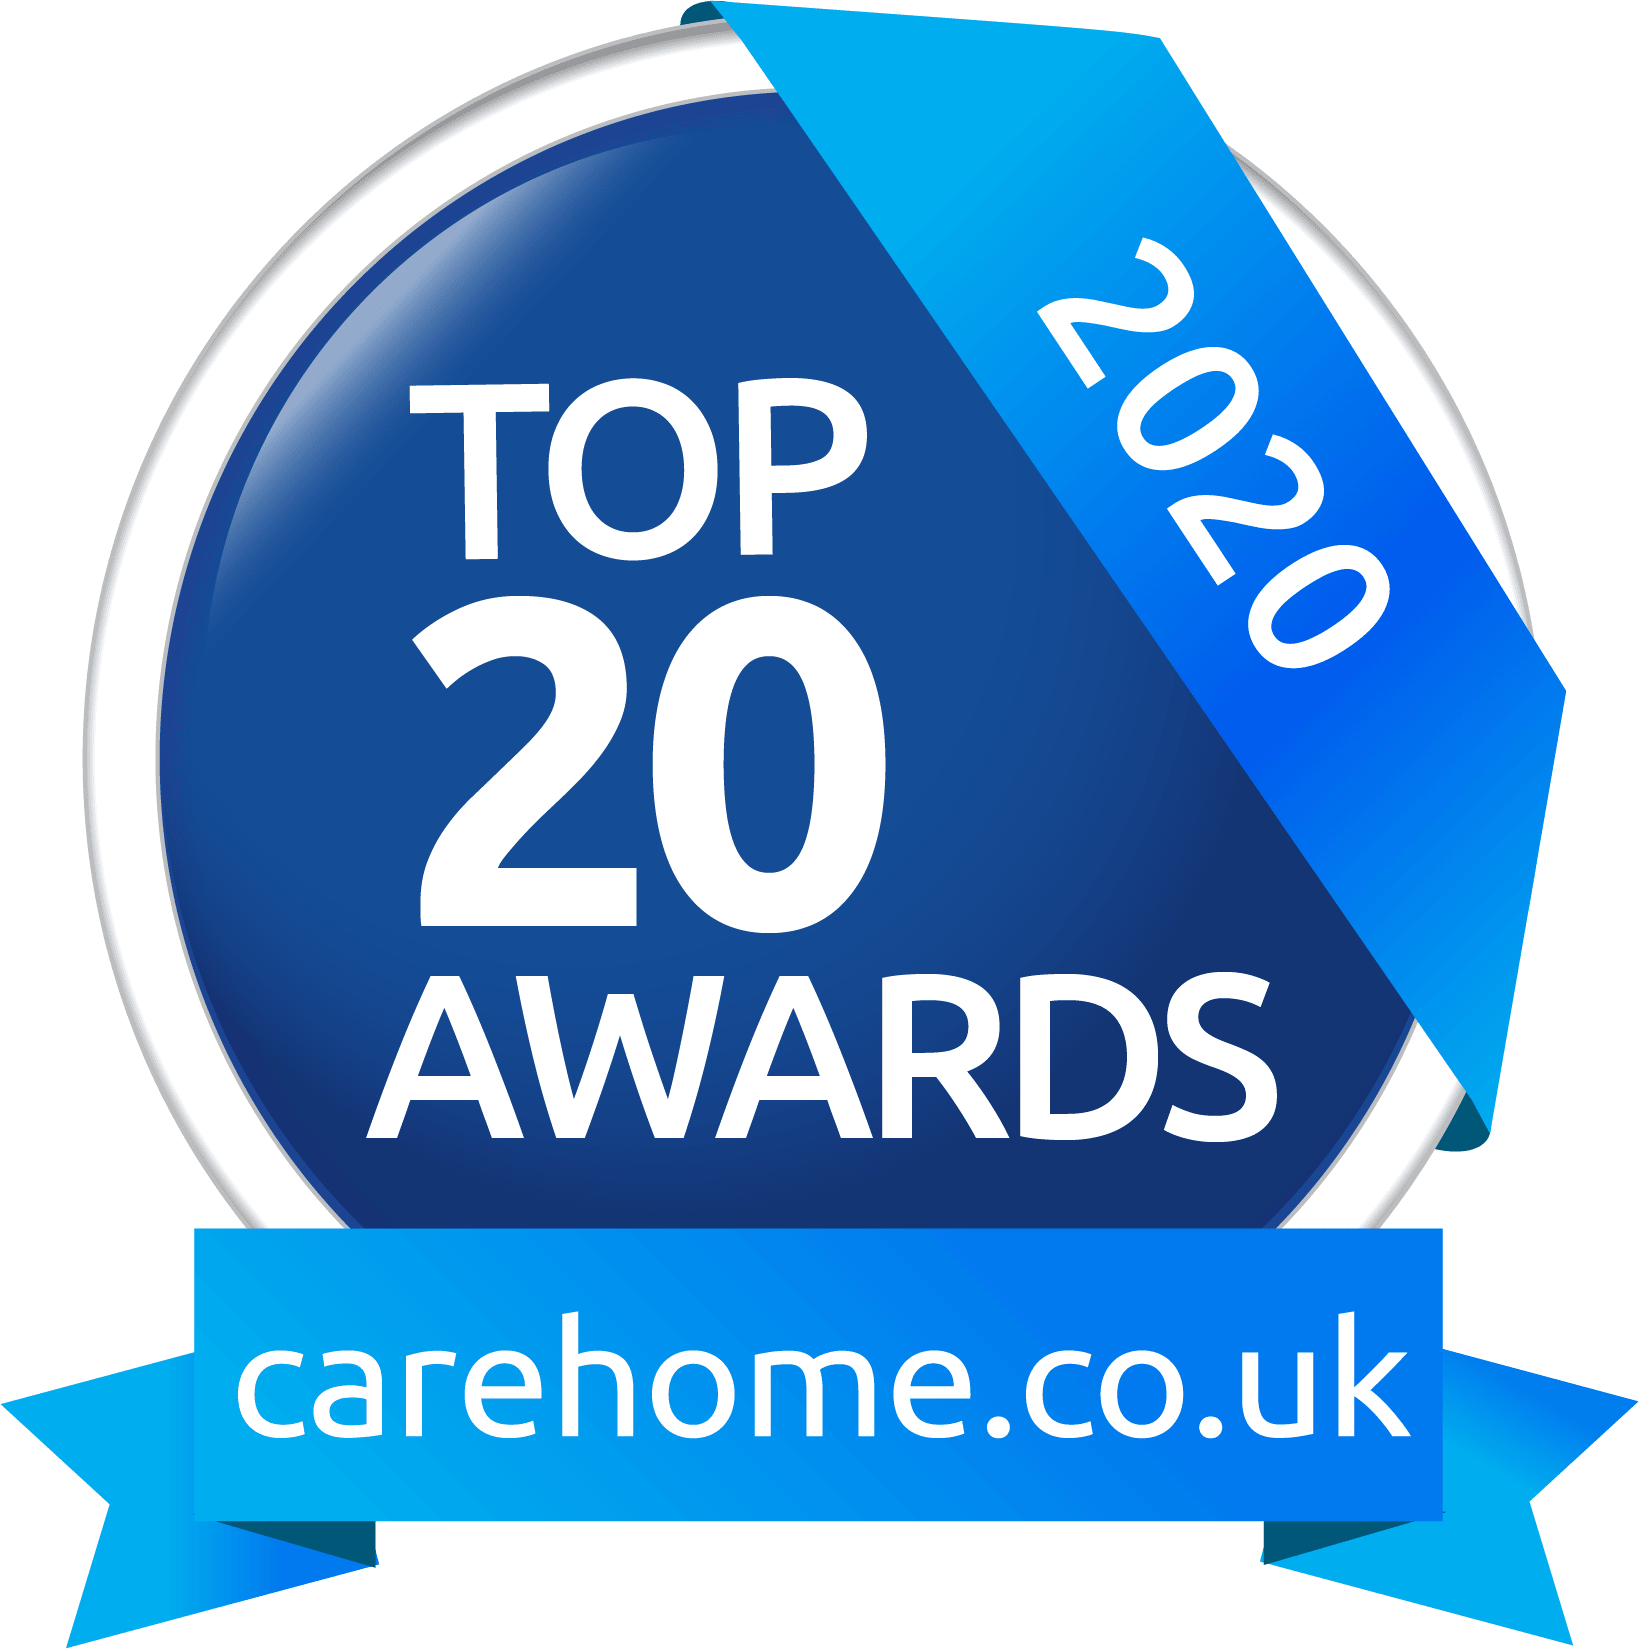 carehome.co.uk 2020 - Top 20 Awards